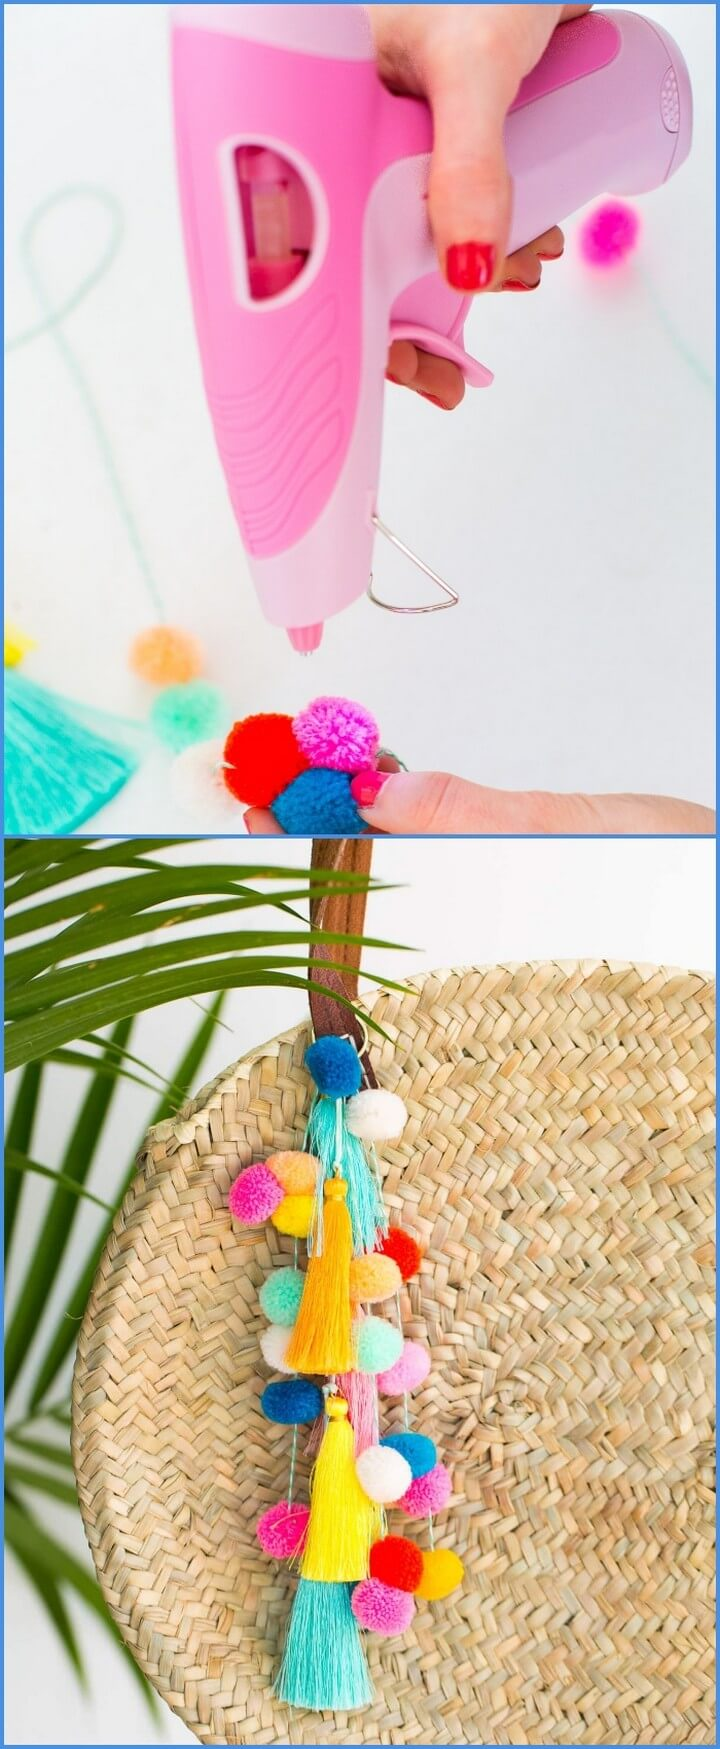 10 DIY Easy Crafts to Make And Sell Ideas For You 2